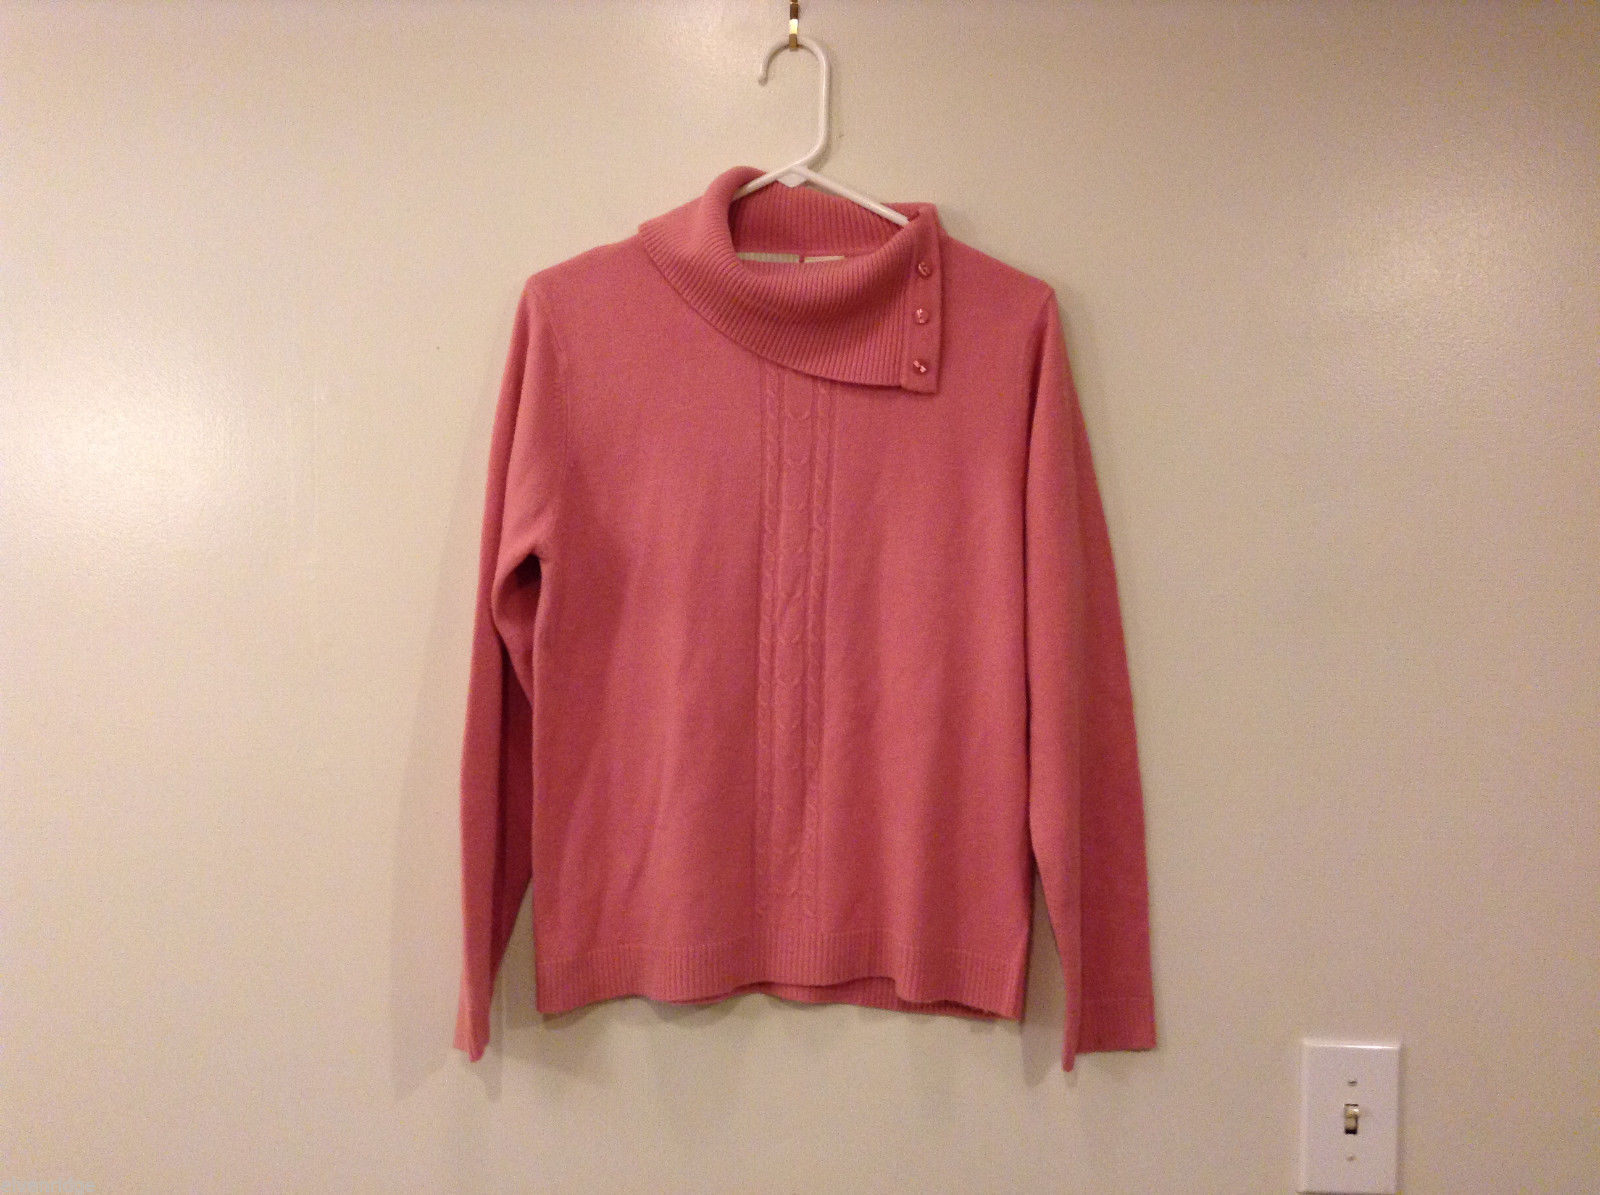 White Stag Pink Asymmetrical Collar Acrylic Sweater Turtleneck Top Size M (8-10)